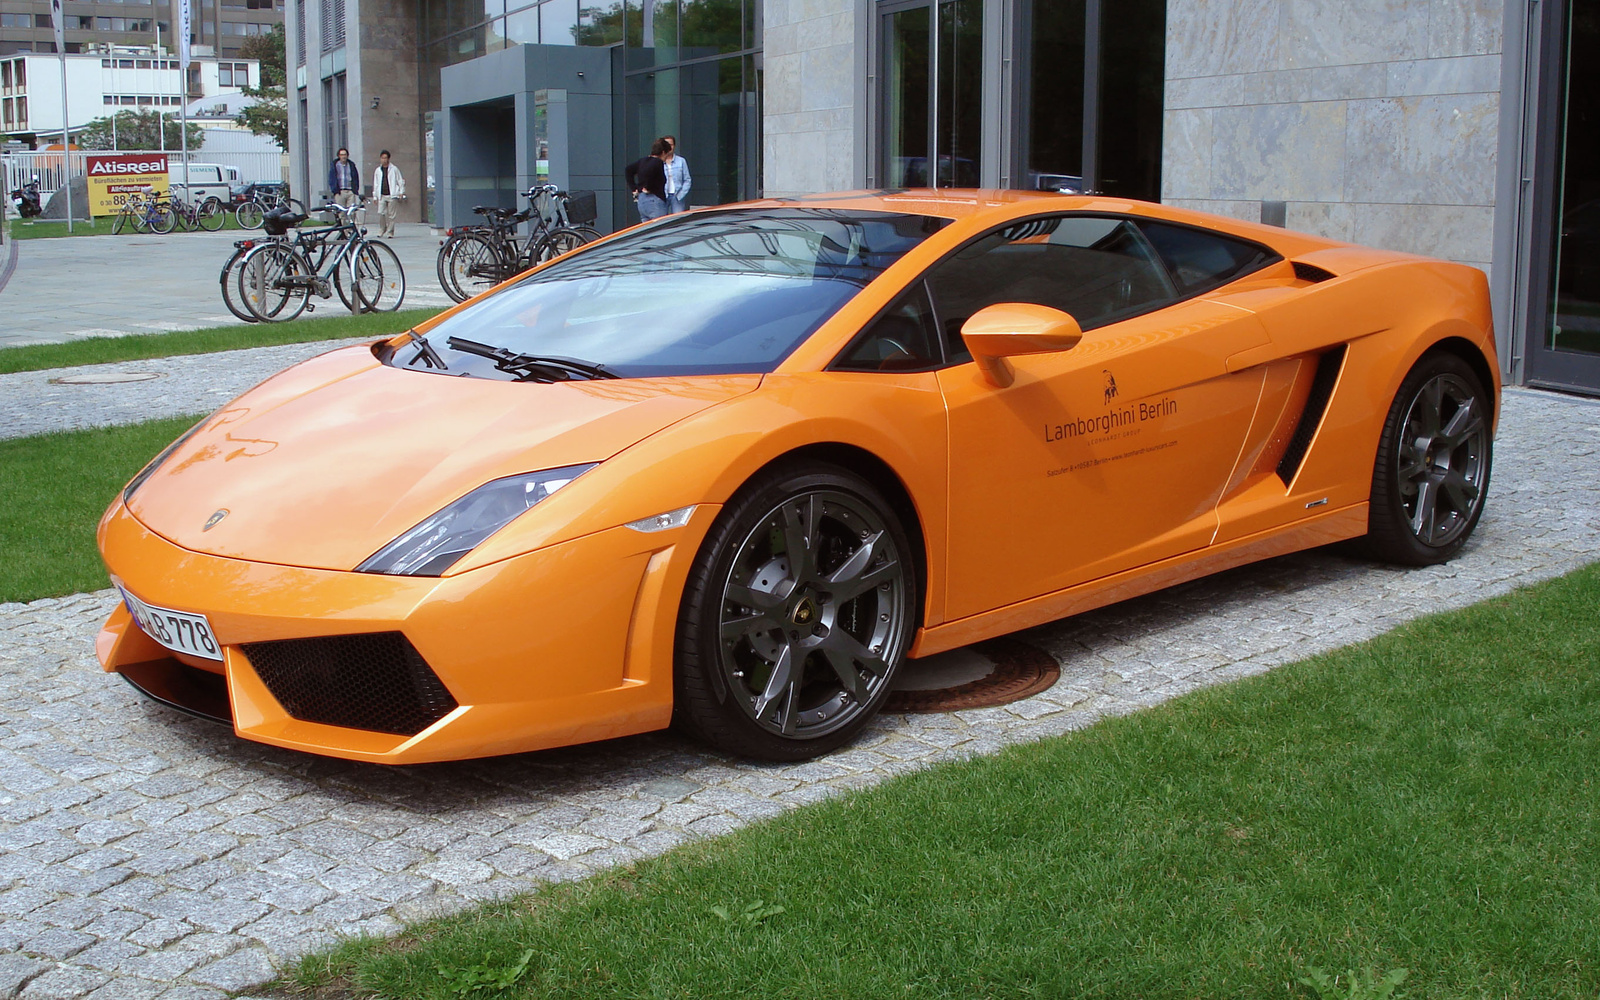 Lamborghini Gallardo Coupe 1024x768 Picture Car Prices